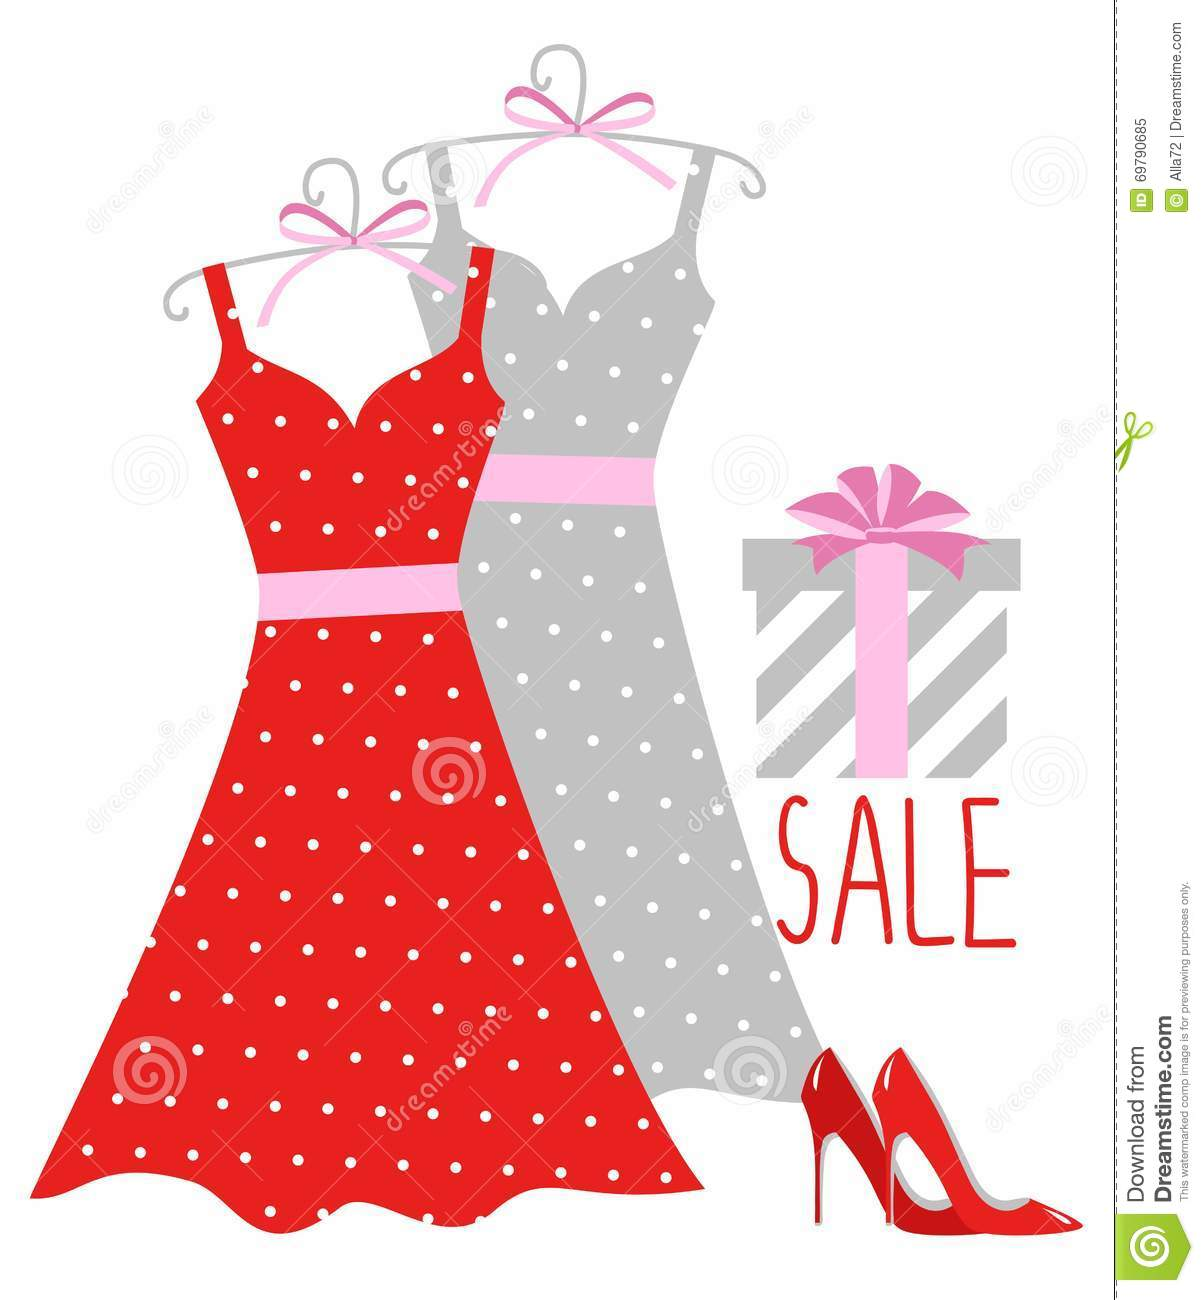 Vector illustration of a polka-dot dress on a hanger, shoes and gift wrapping.